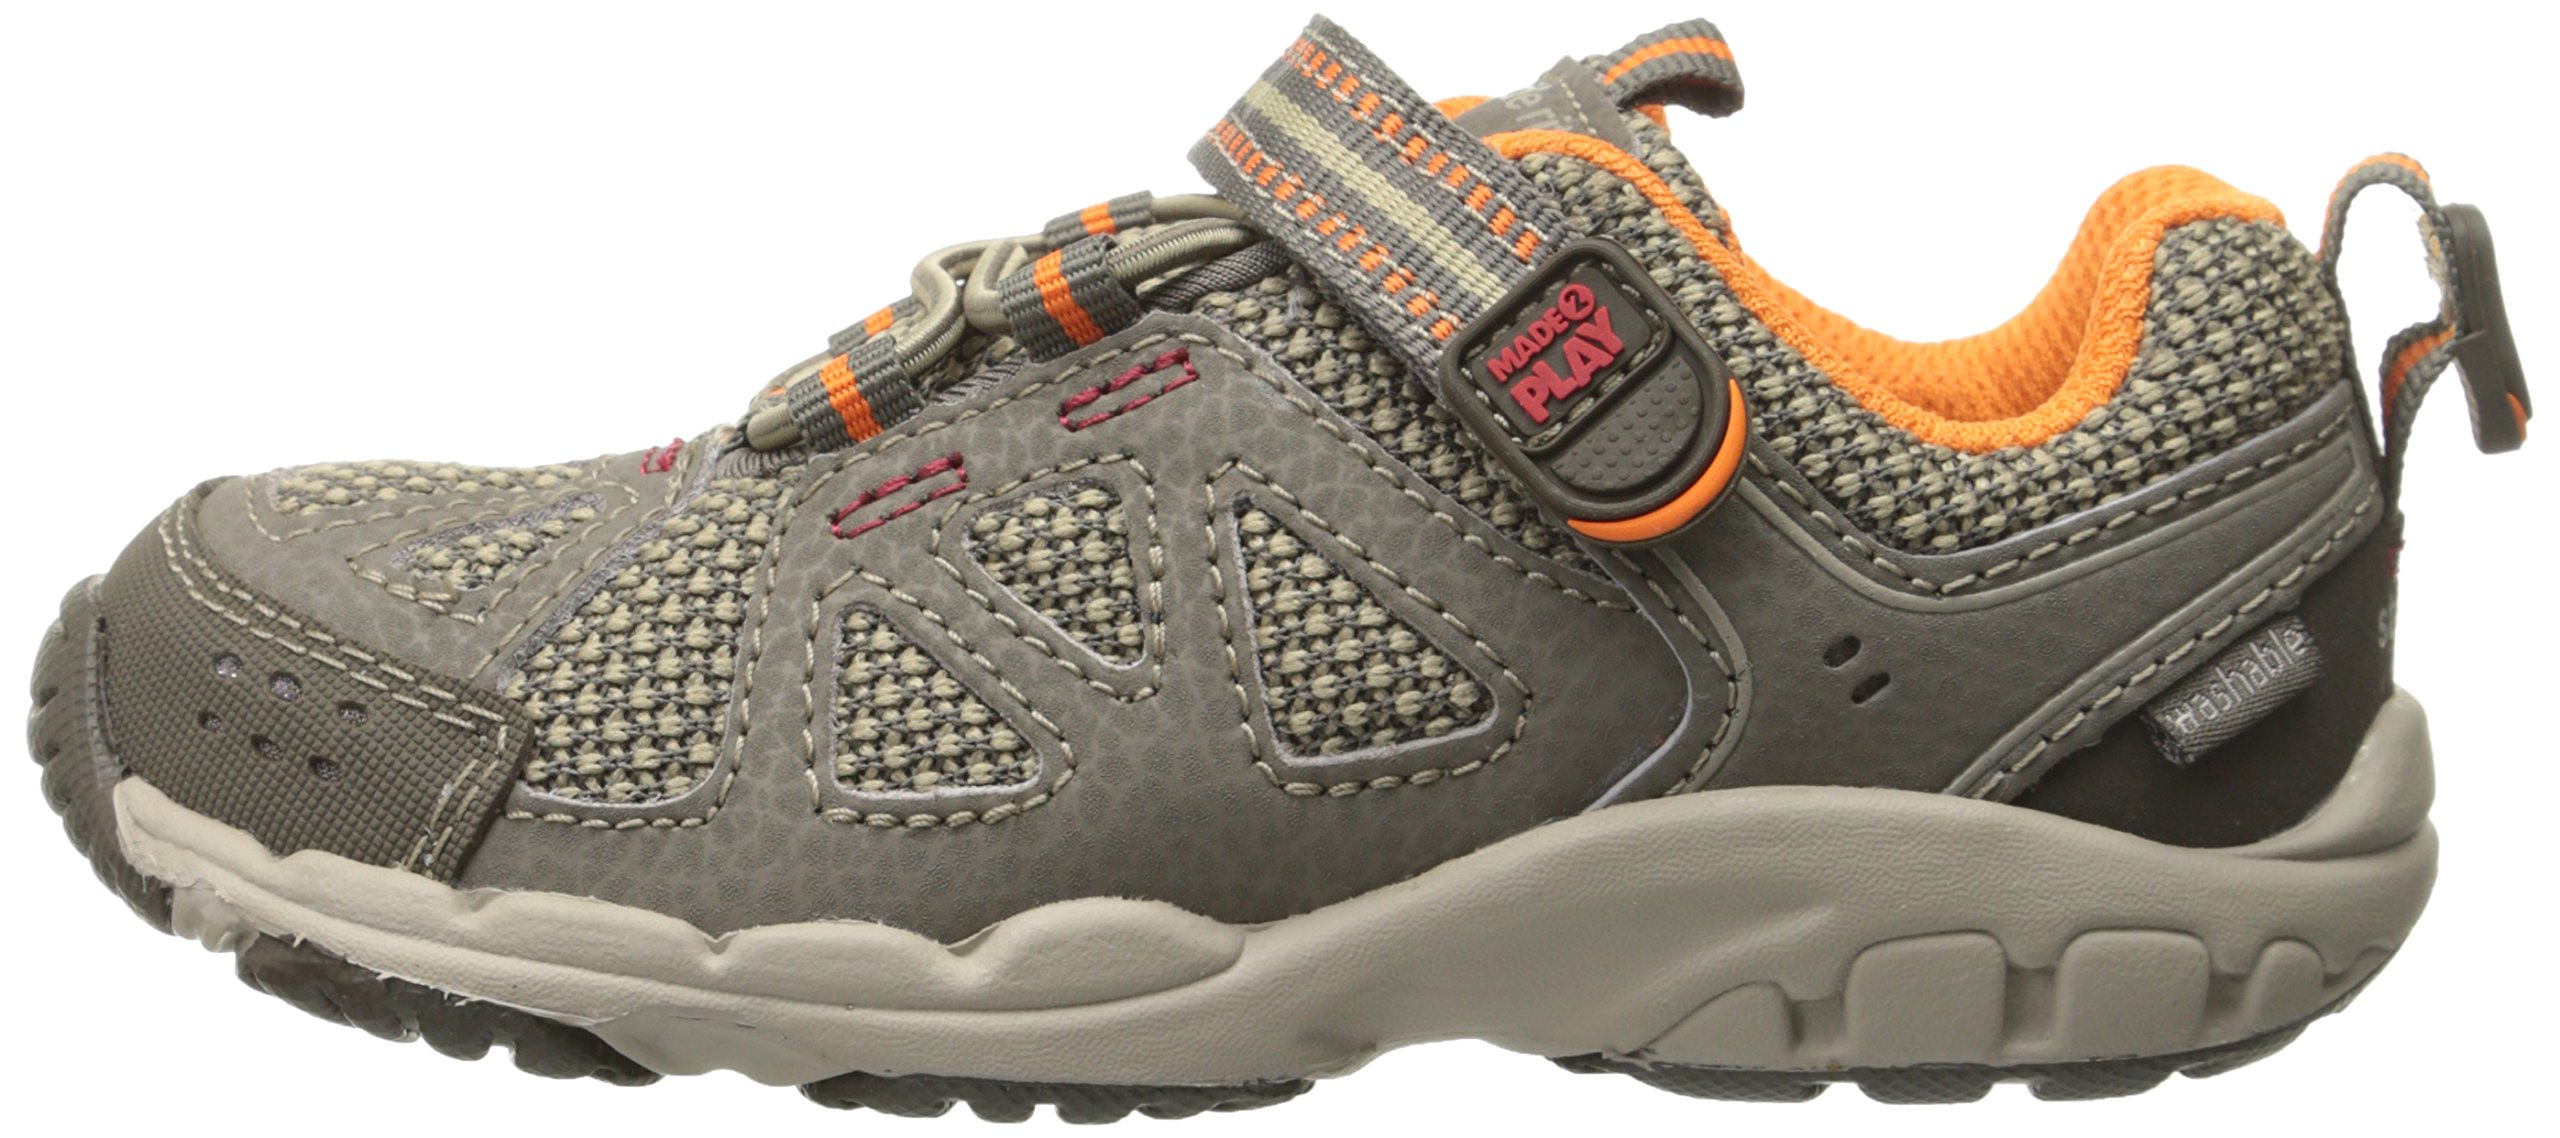 Stride Rite Made 2 Play Baby Ian Sneaker (Toddler),Taupe,4.5 XW US Toddler by Stride Rite (Image #4)